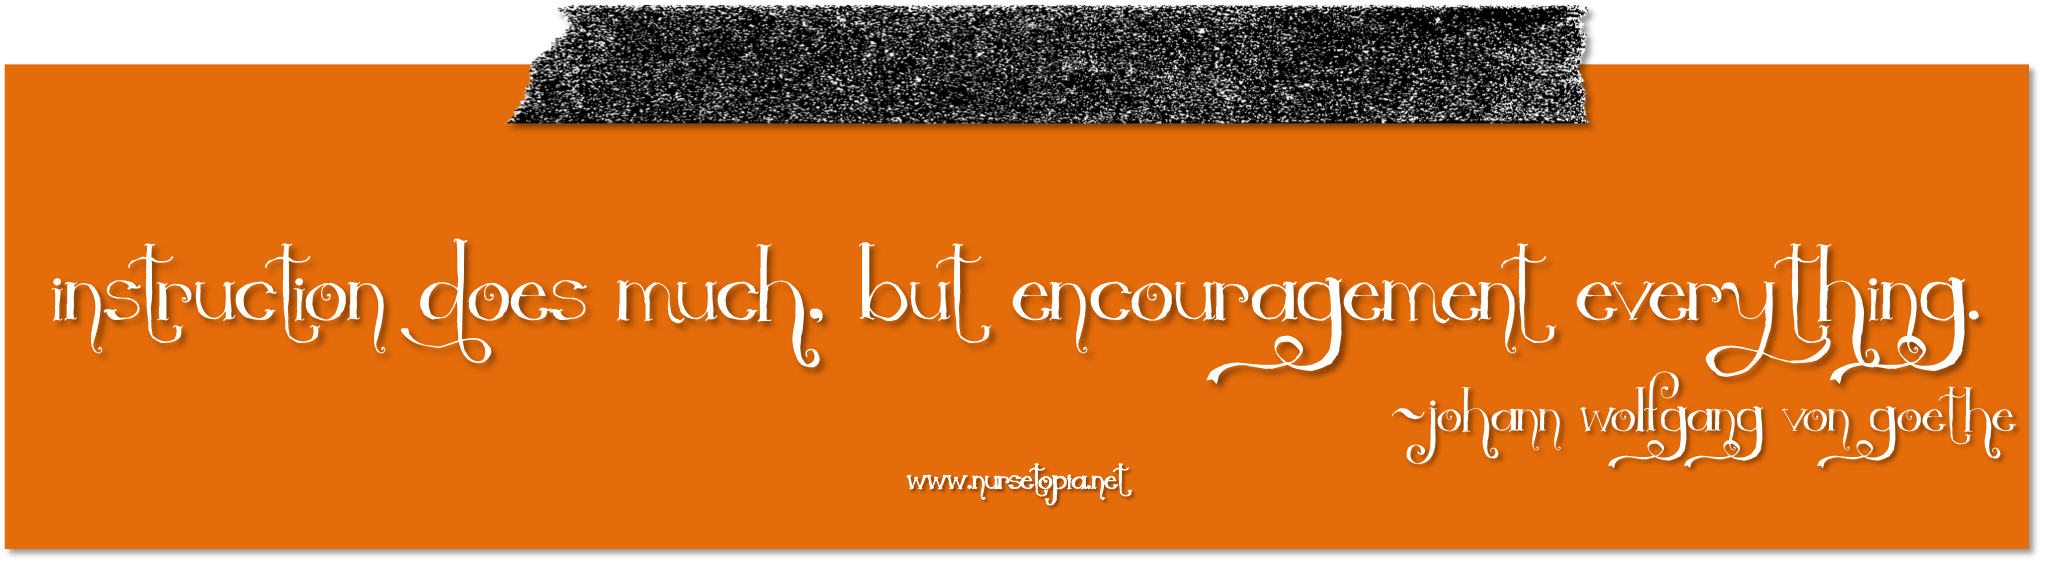 EncouragementEverything